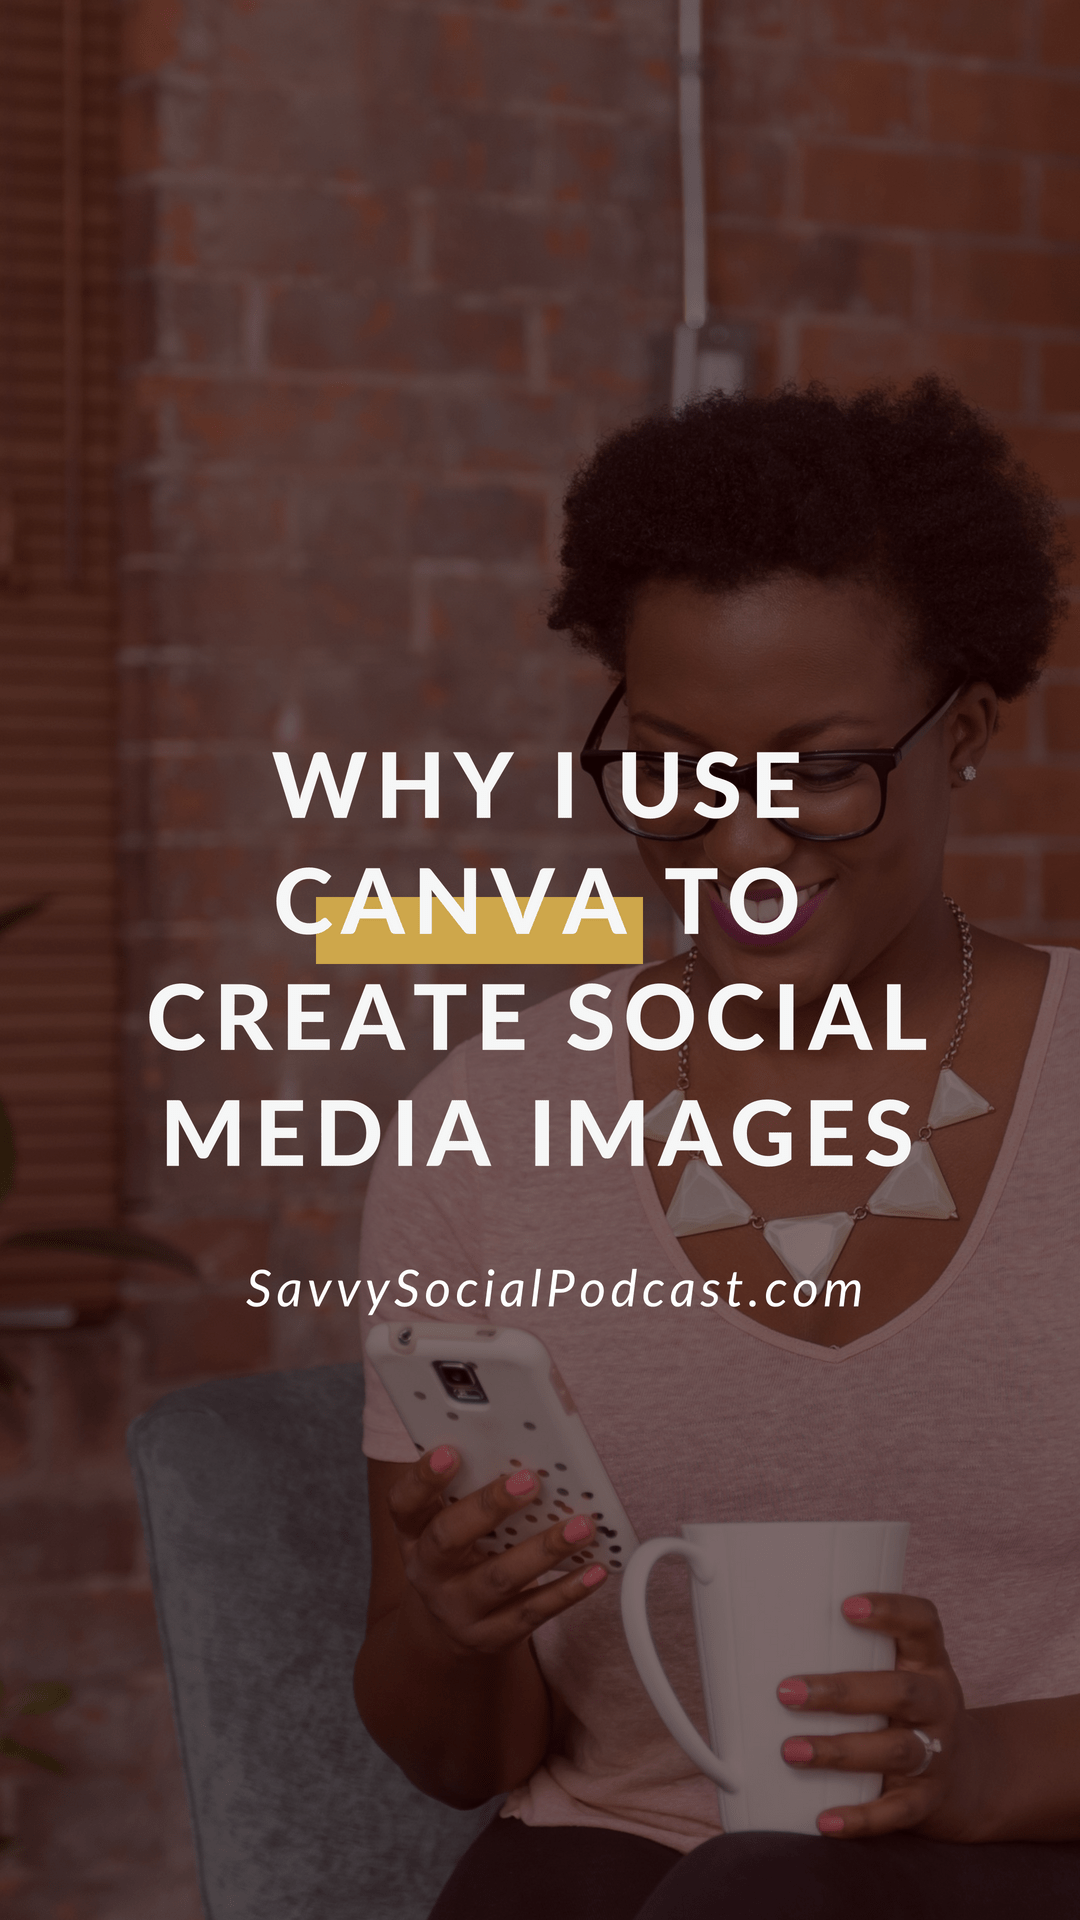 This is episode 9 of the Savvy Social Podcast and today we're talking all about Canva, my secret to creating social media images for myself and my clients.